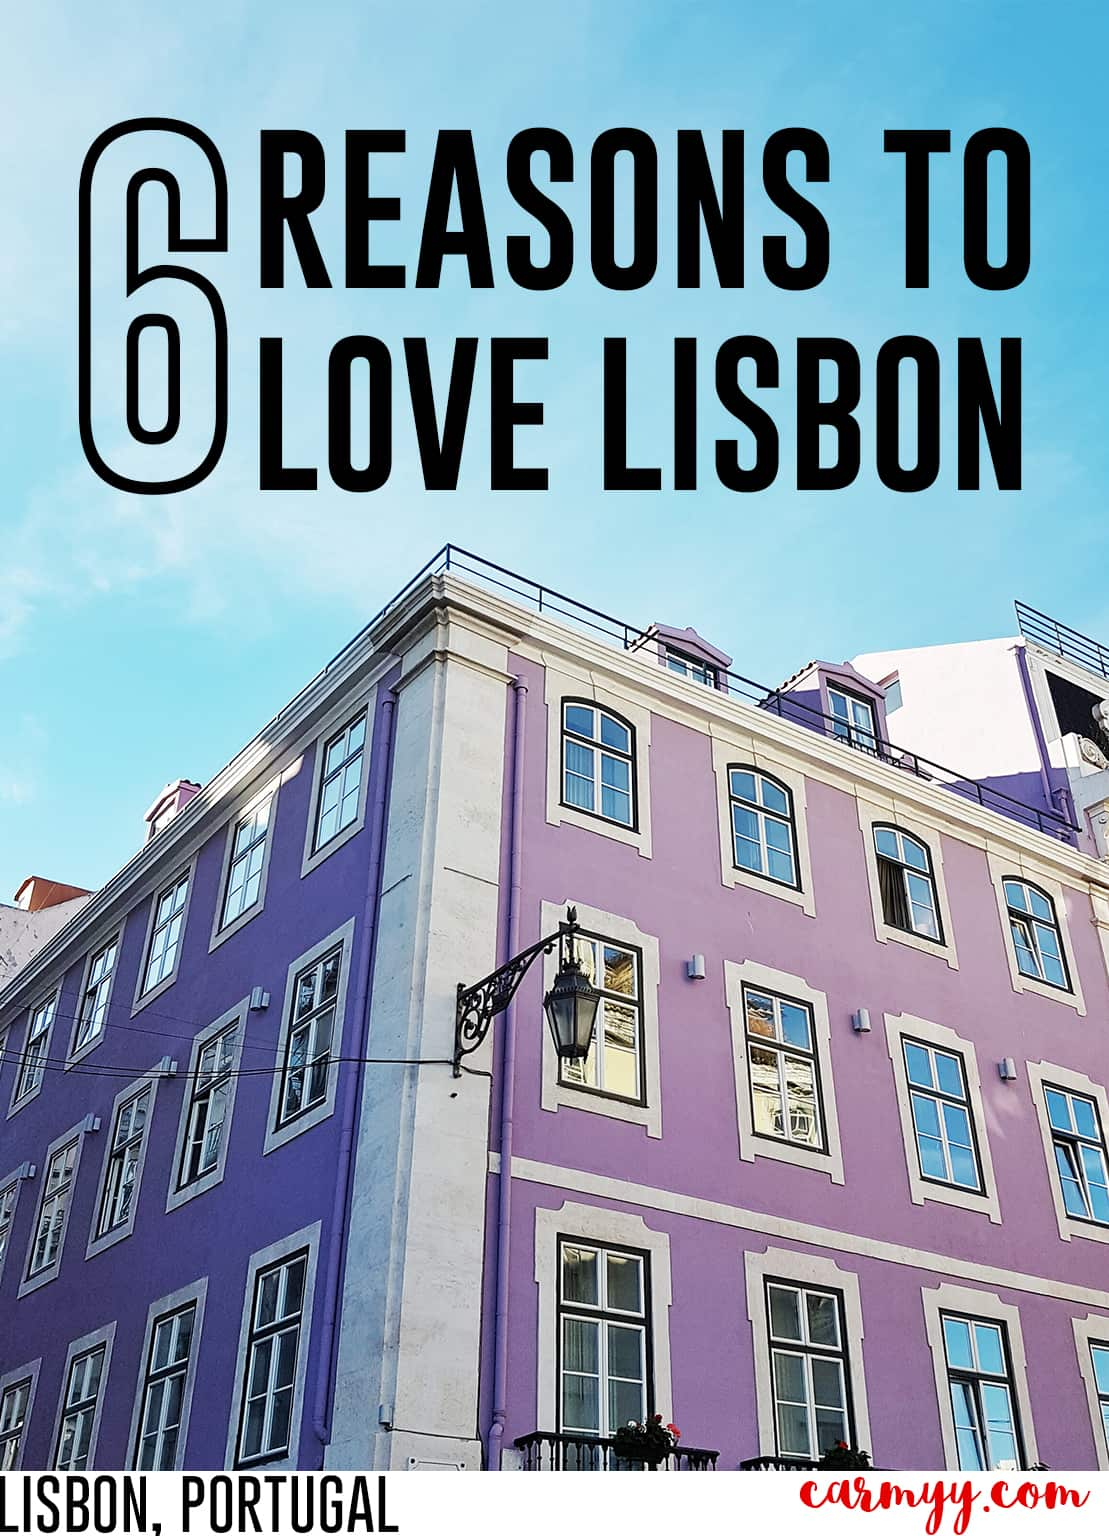 6 Reasons to Love Lisbon, Portugal! www.carmyy.com